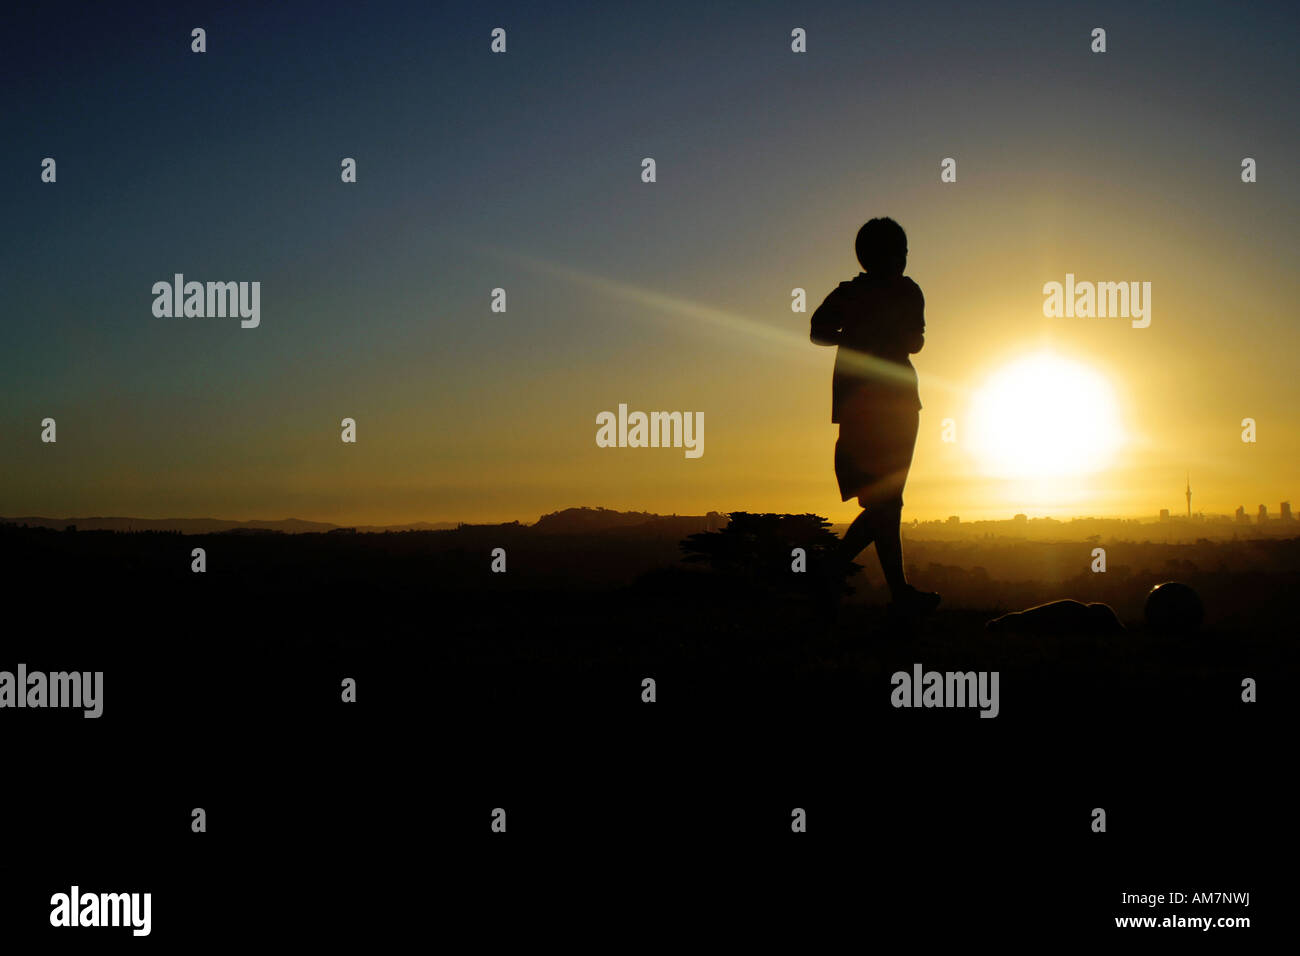 young man jogging at sunset - Stock Image